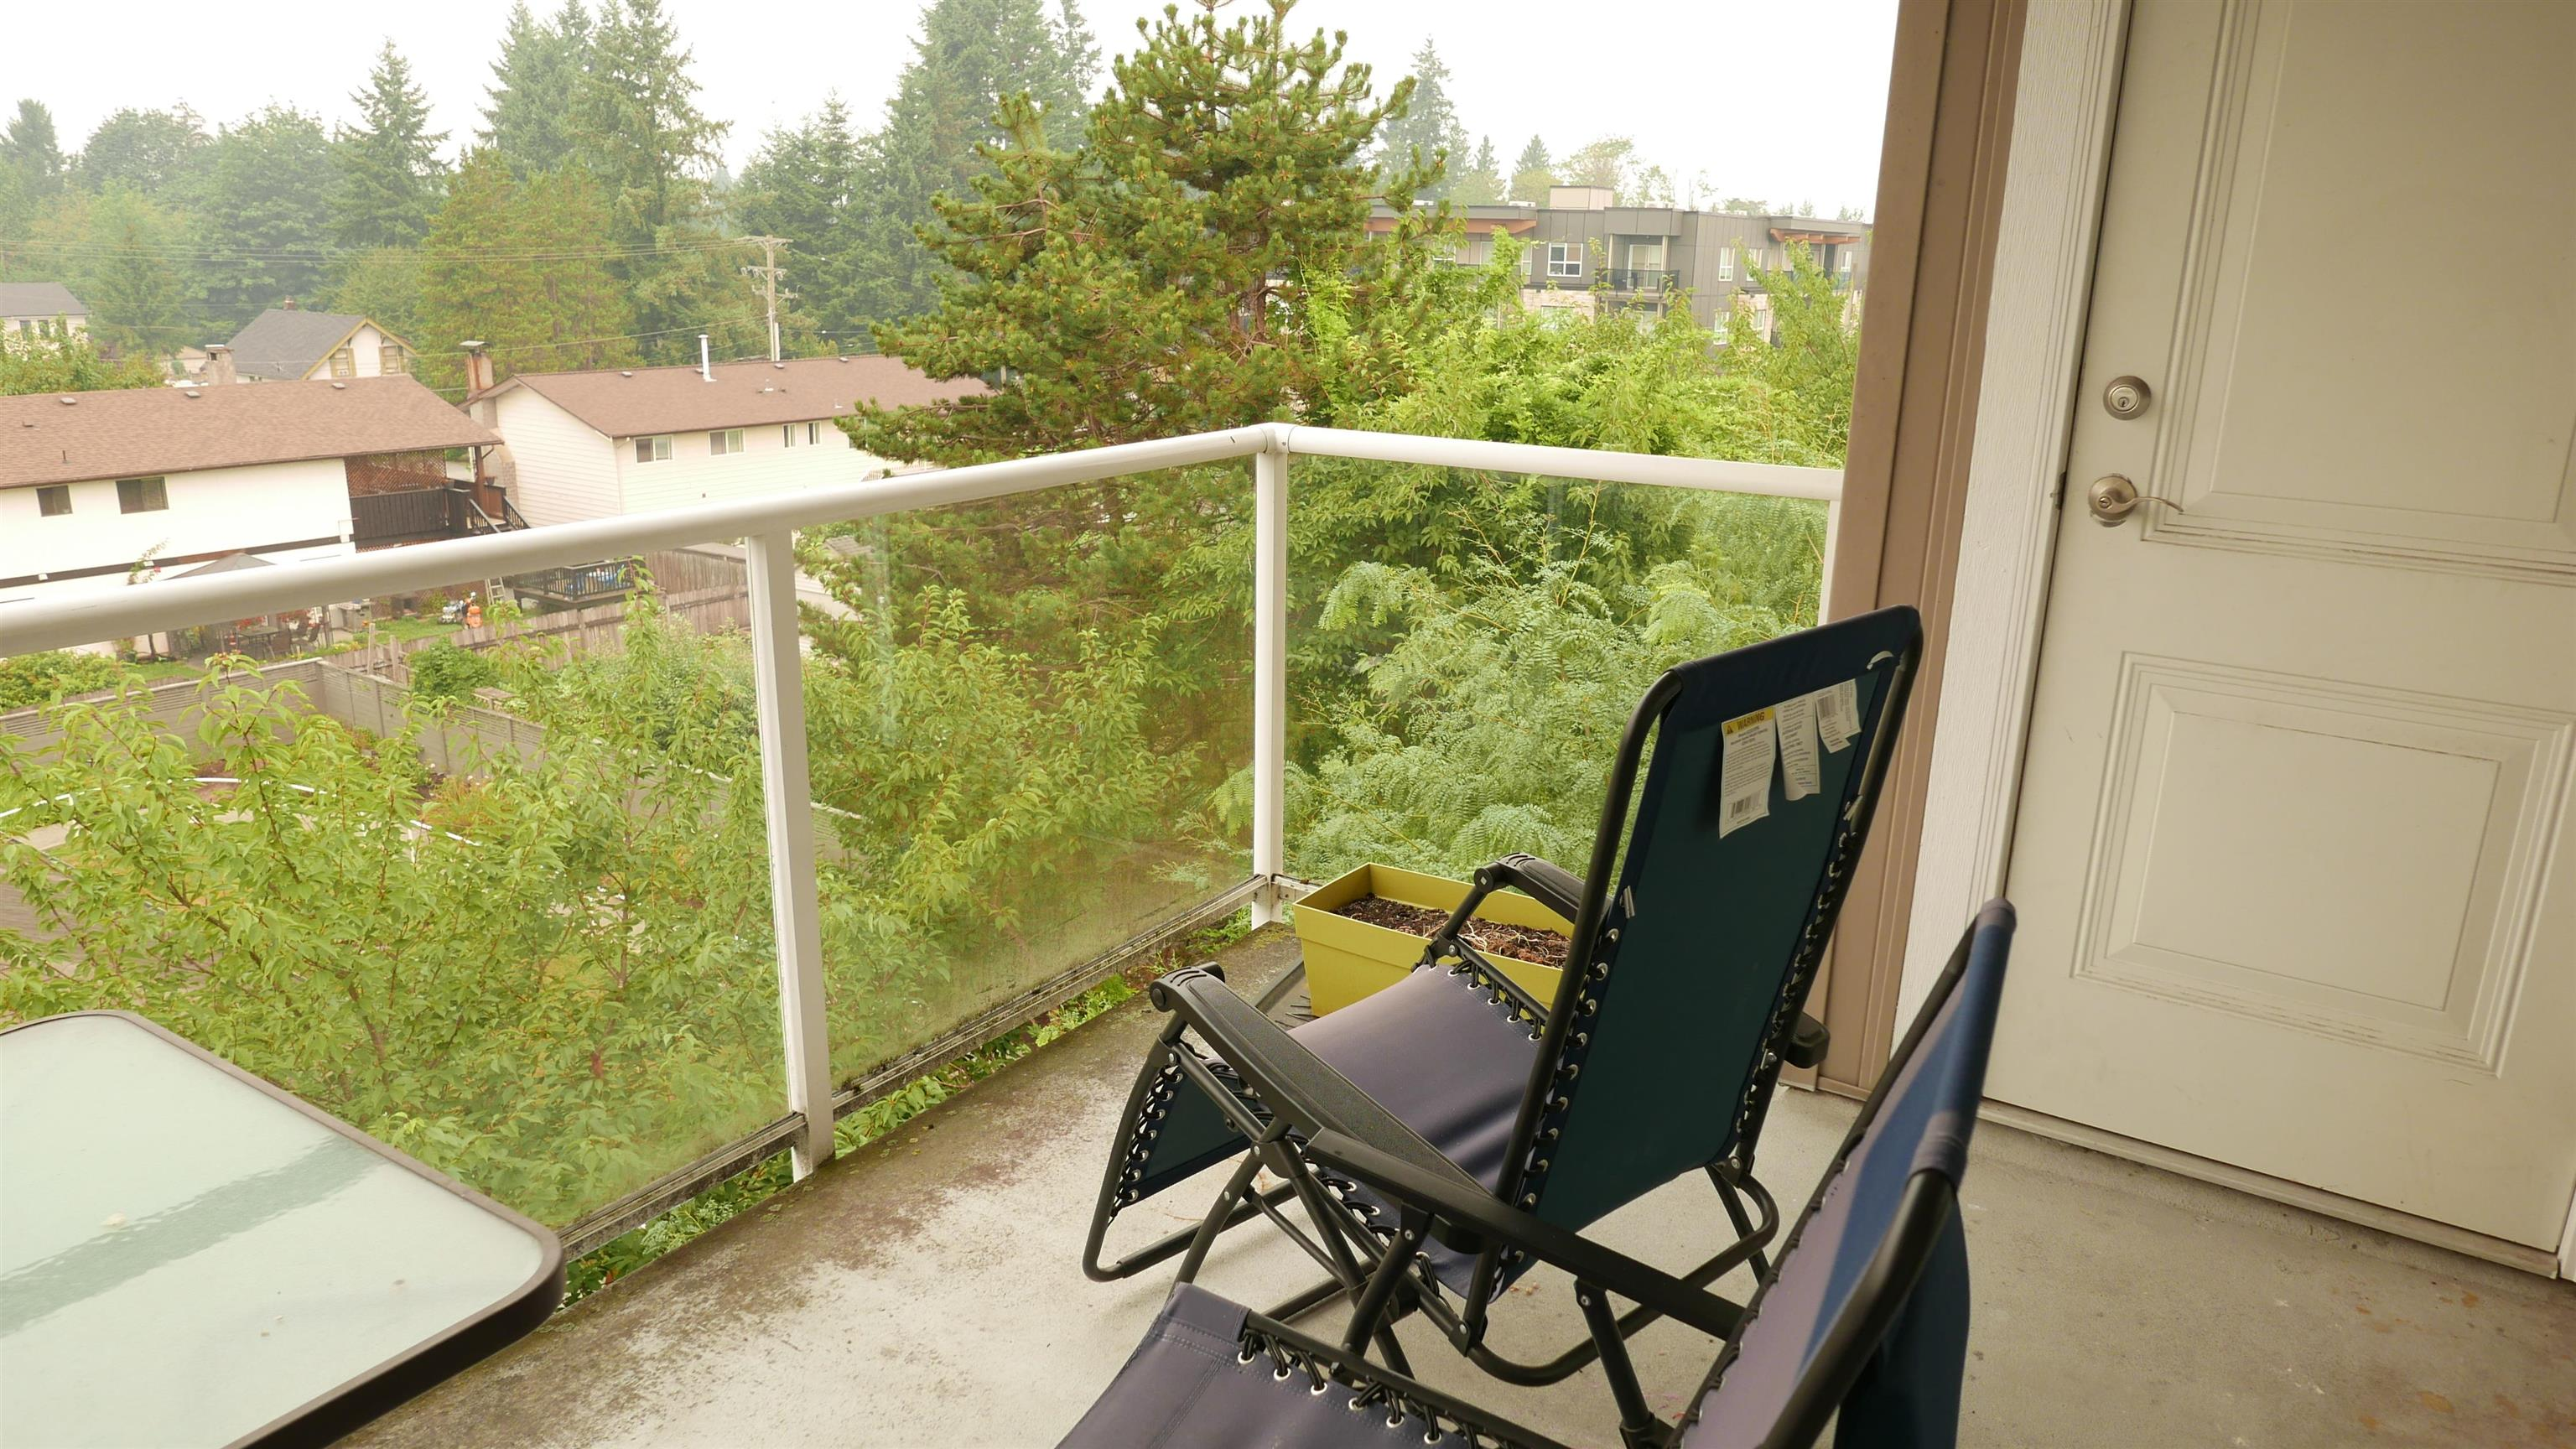 413 22255 122 AVENUE - West Central Apartment/Condo for sale, 3 Bedrooms (R2616226) - #5